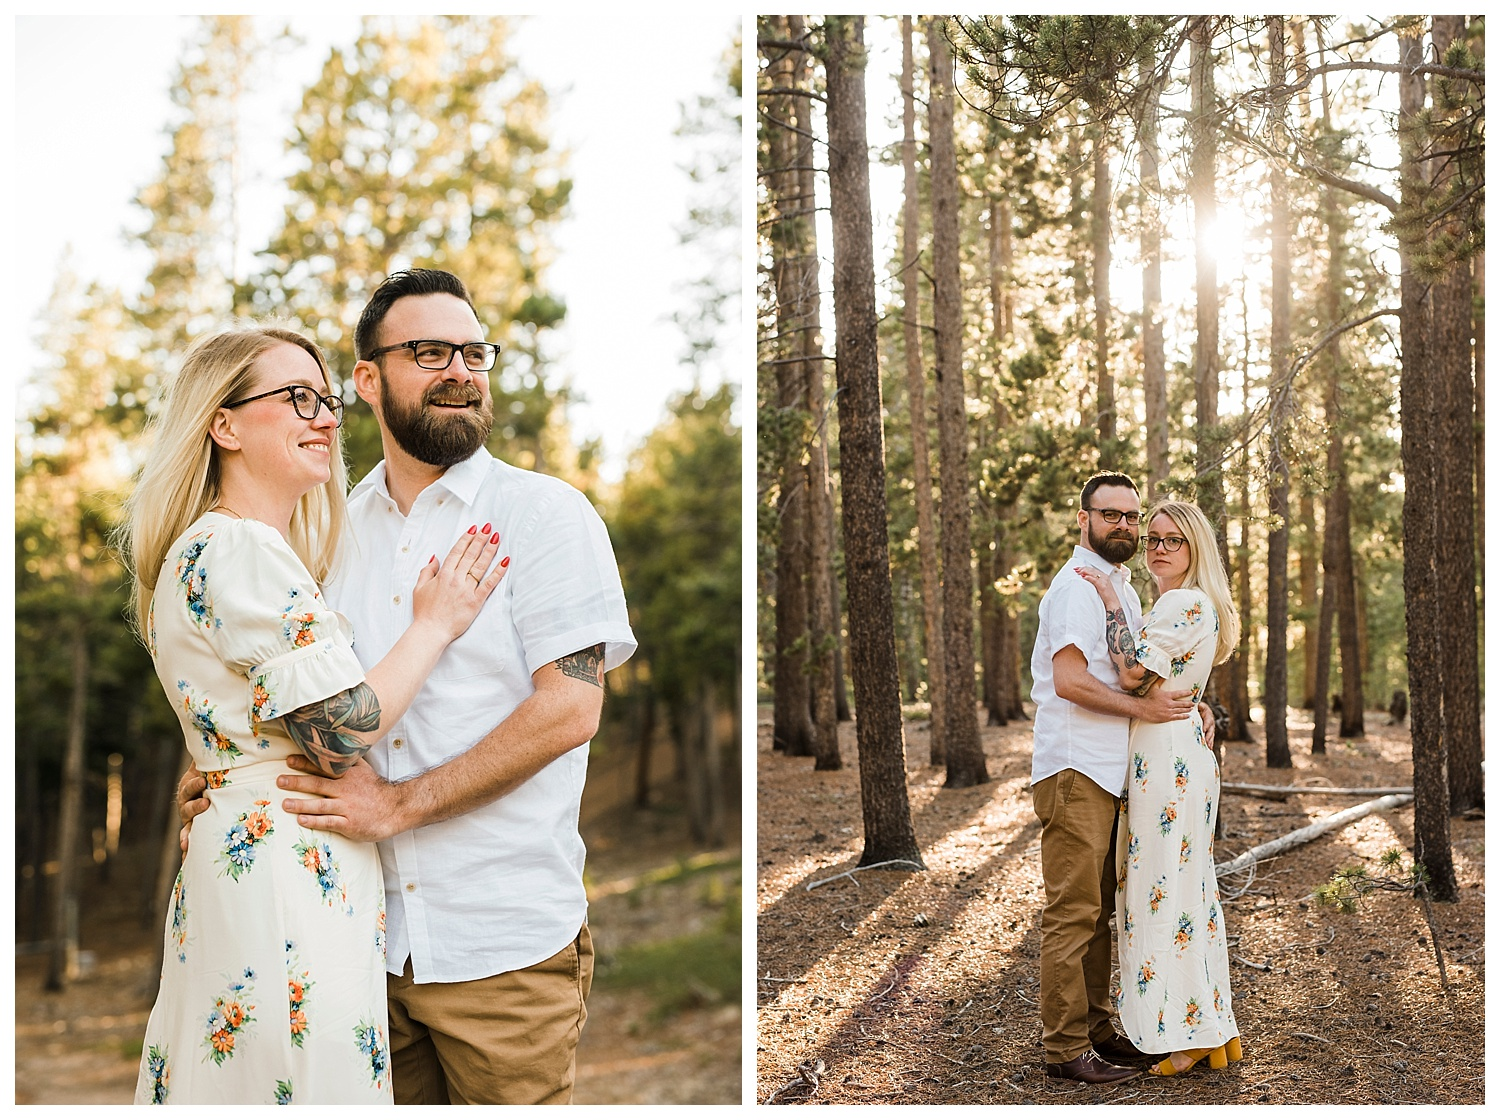 Golden_Gate_Canyon_State_Park_Engagement_Apollo_Fields_17.jpg